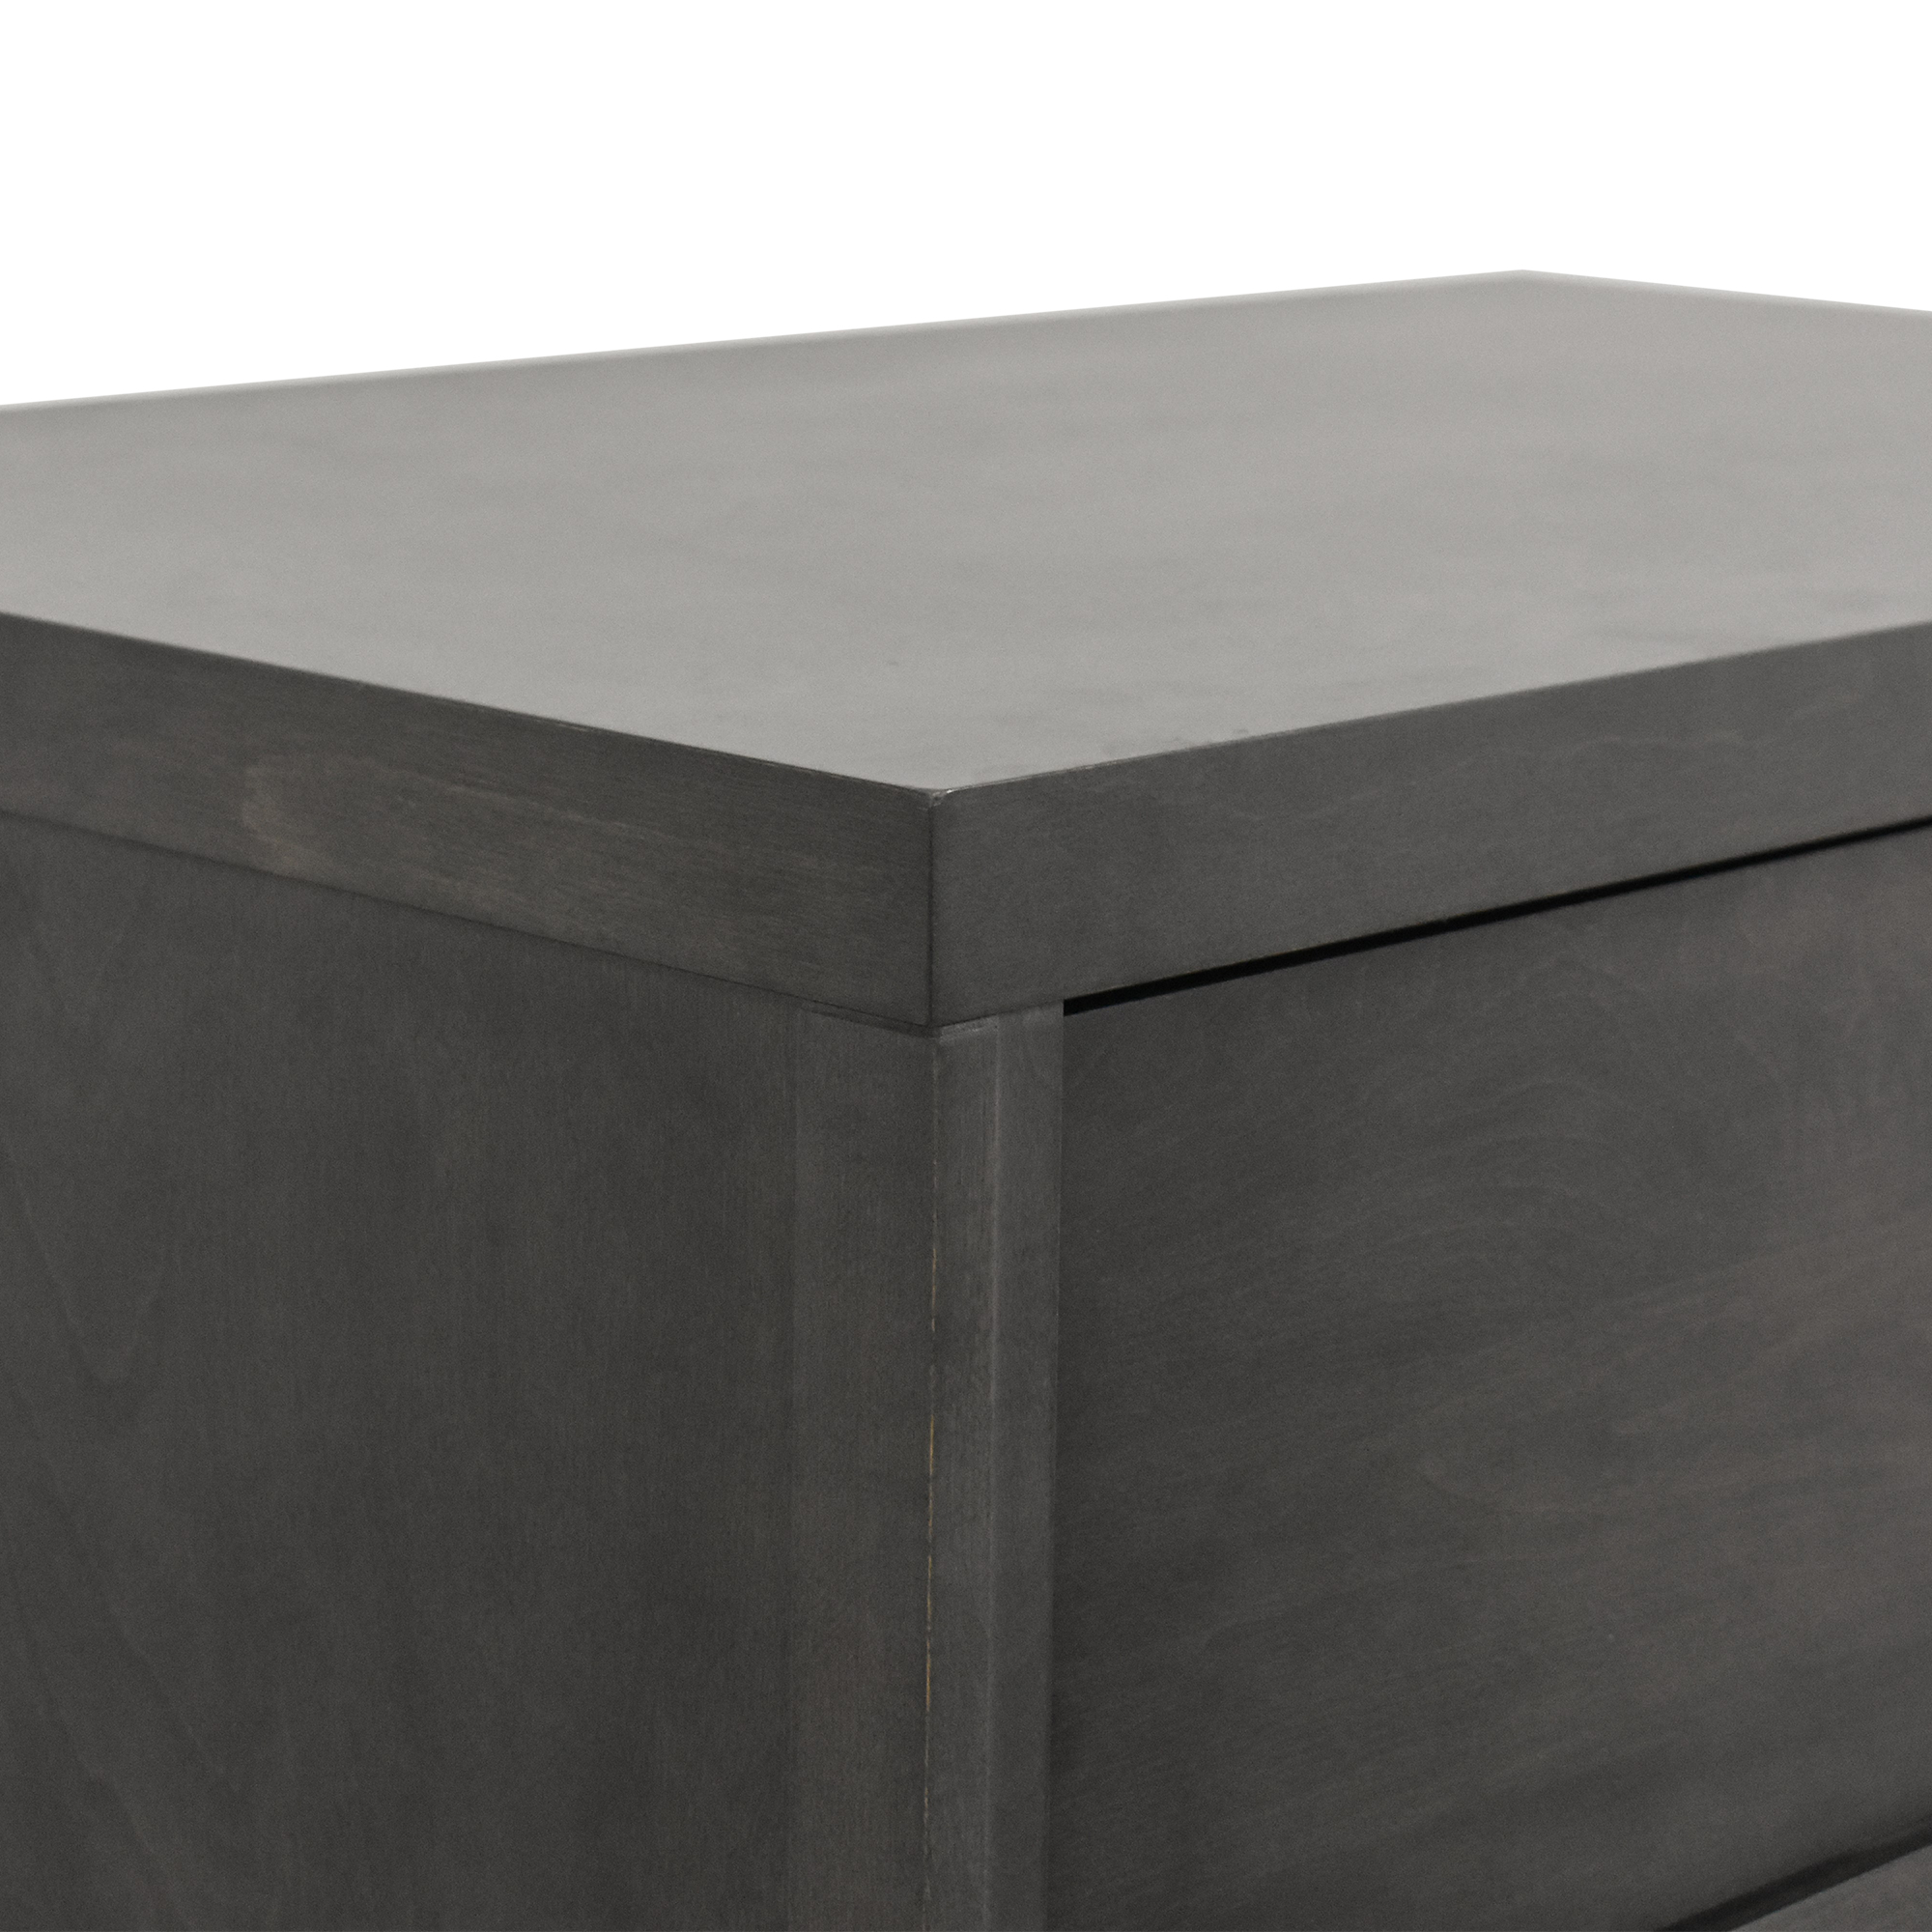 Baronet Baronet Silver Five Drawer Chest dimensions